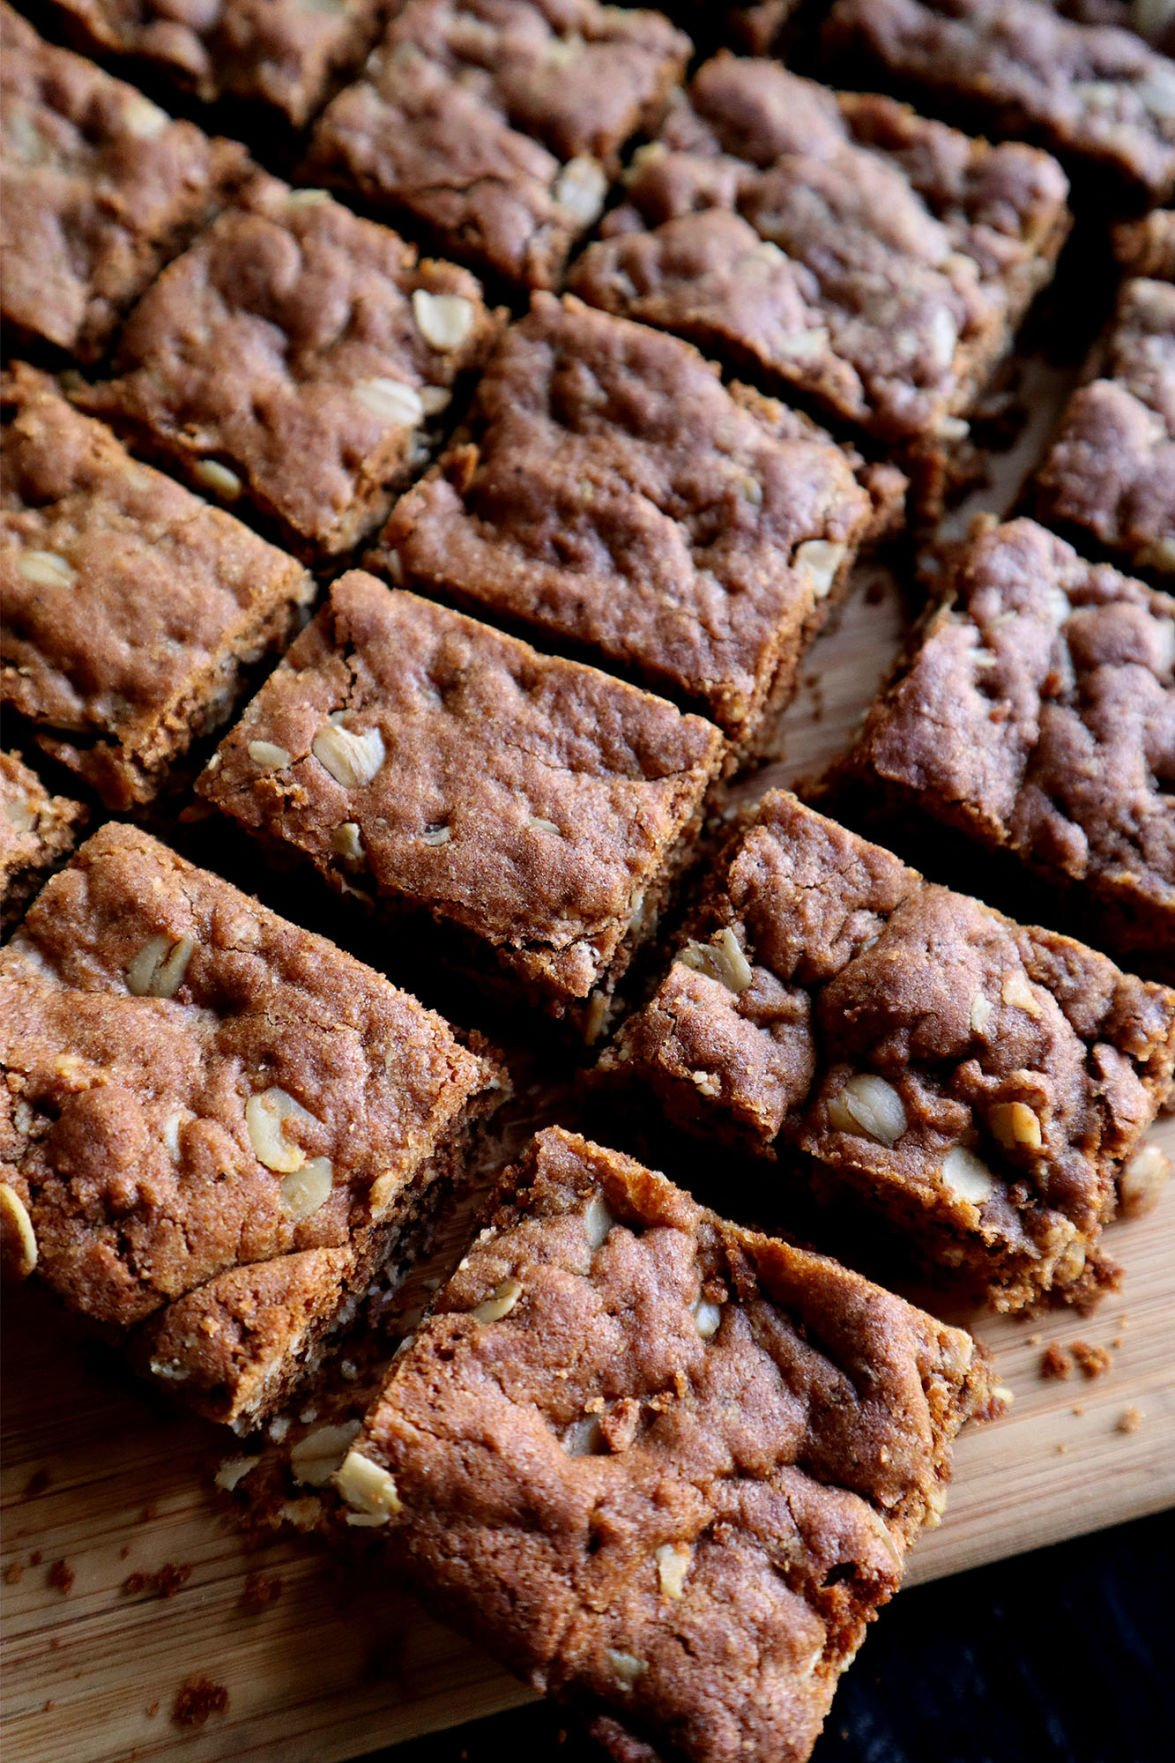 A snack that combines protein carbs and fat -- such as these ginger and molasses energy bars -- help you feel satiated when you're stress eating.